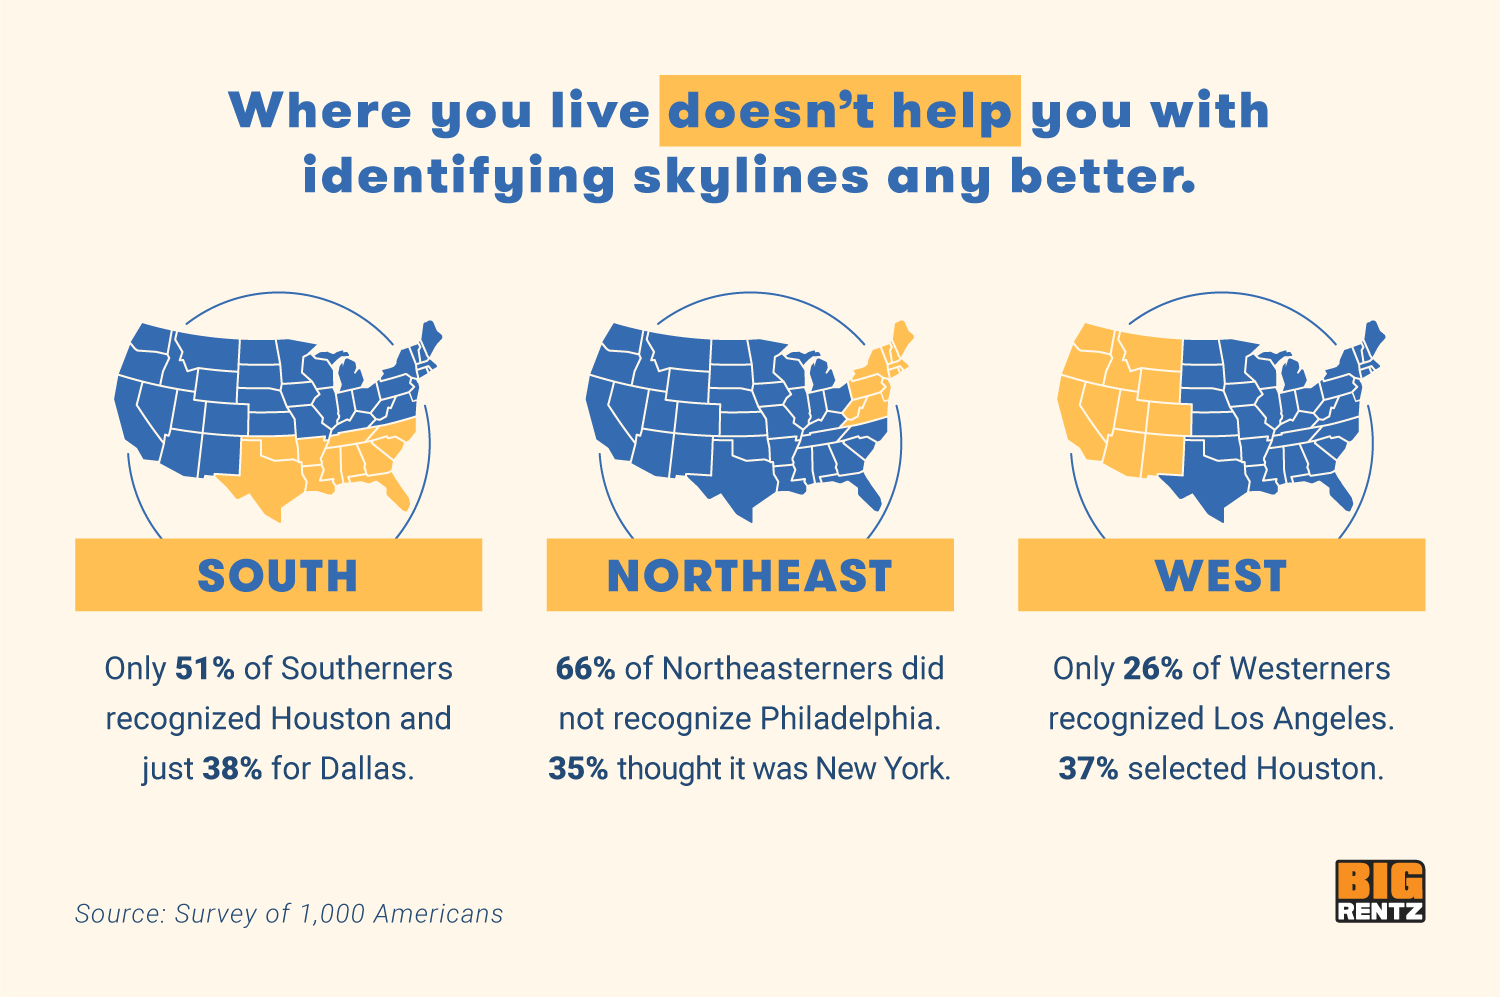 Where Americans live does not help with identifying skylines.